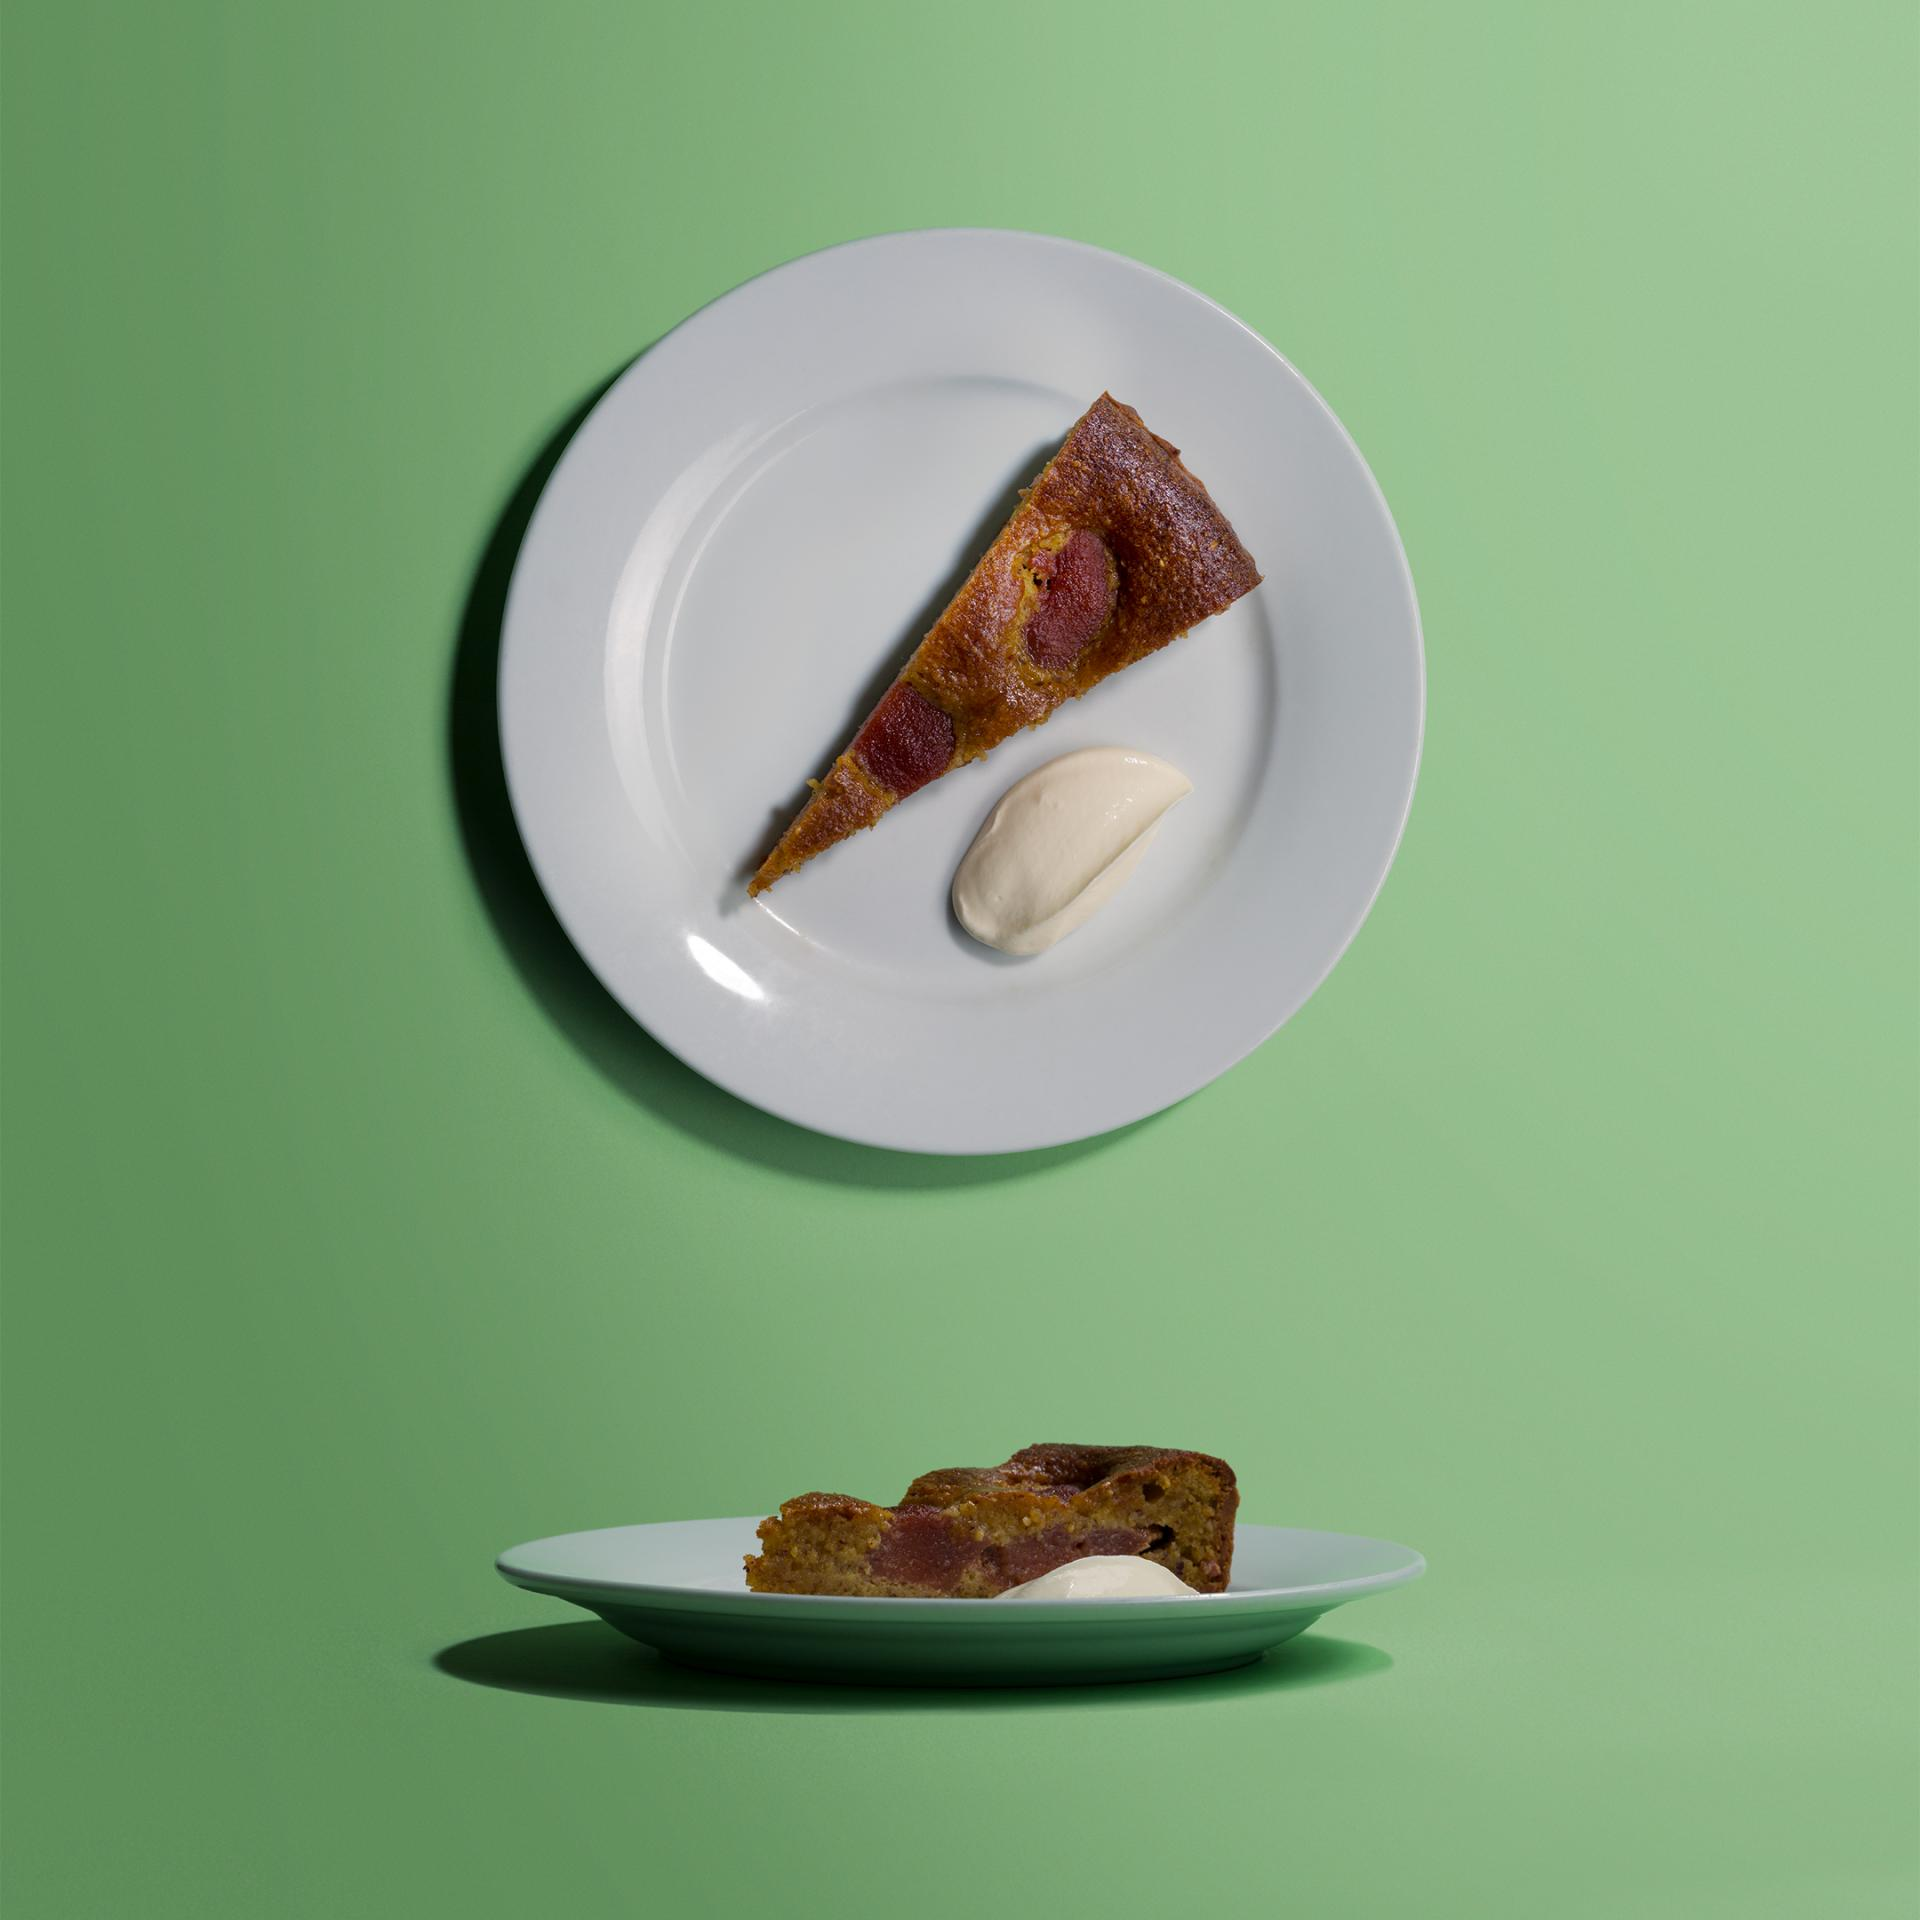 Margot Henderson's quince and almond tart